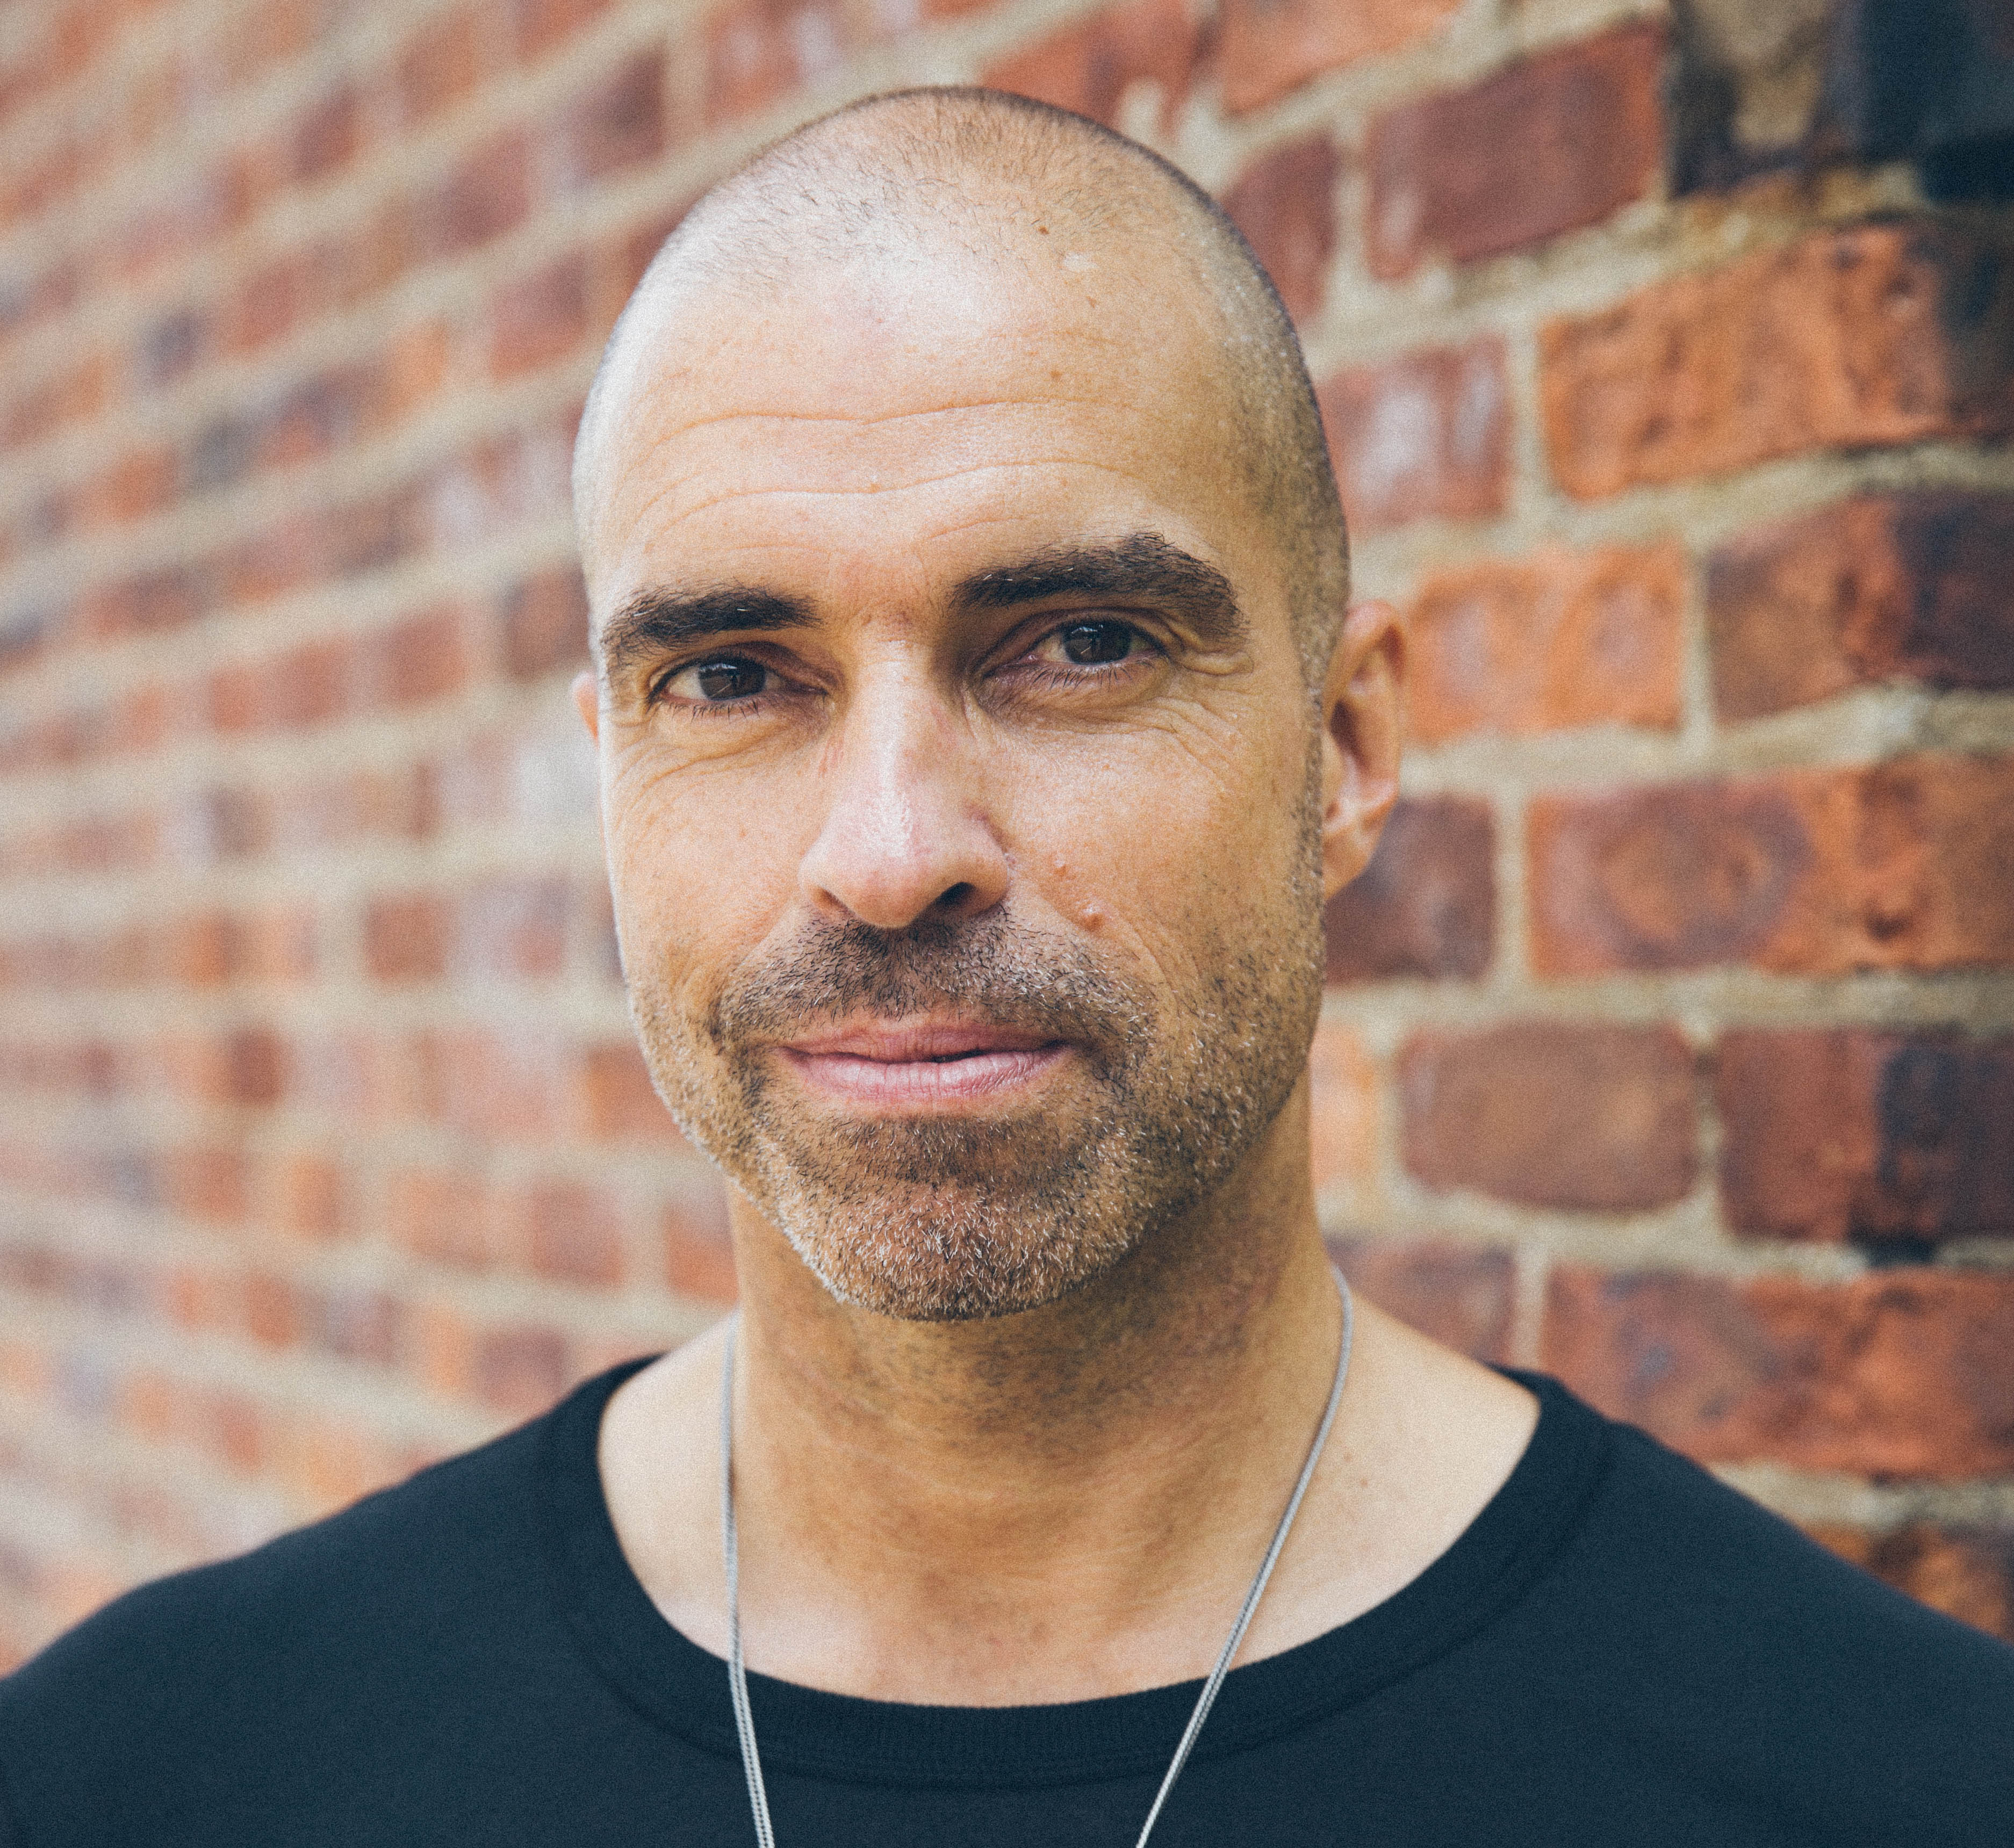 mute chris liebing listen to card house featuring miles cooper